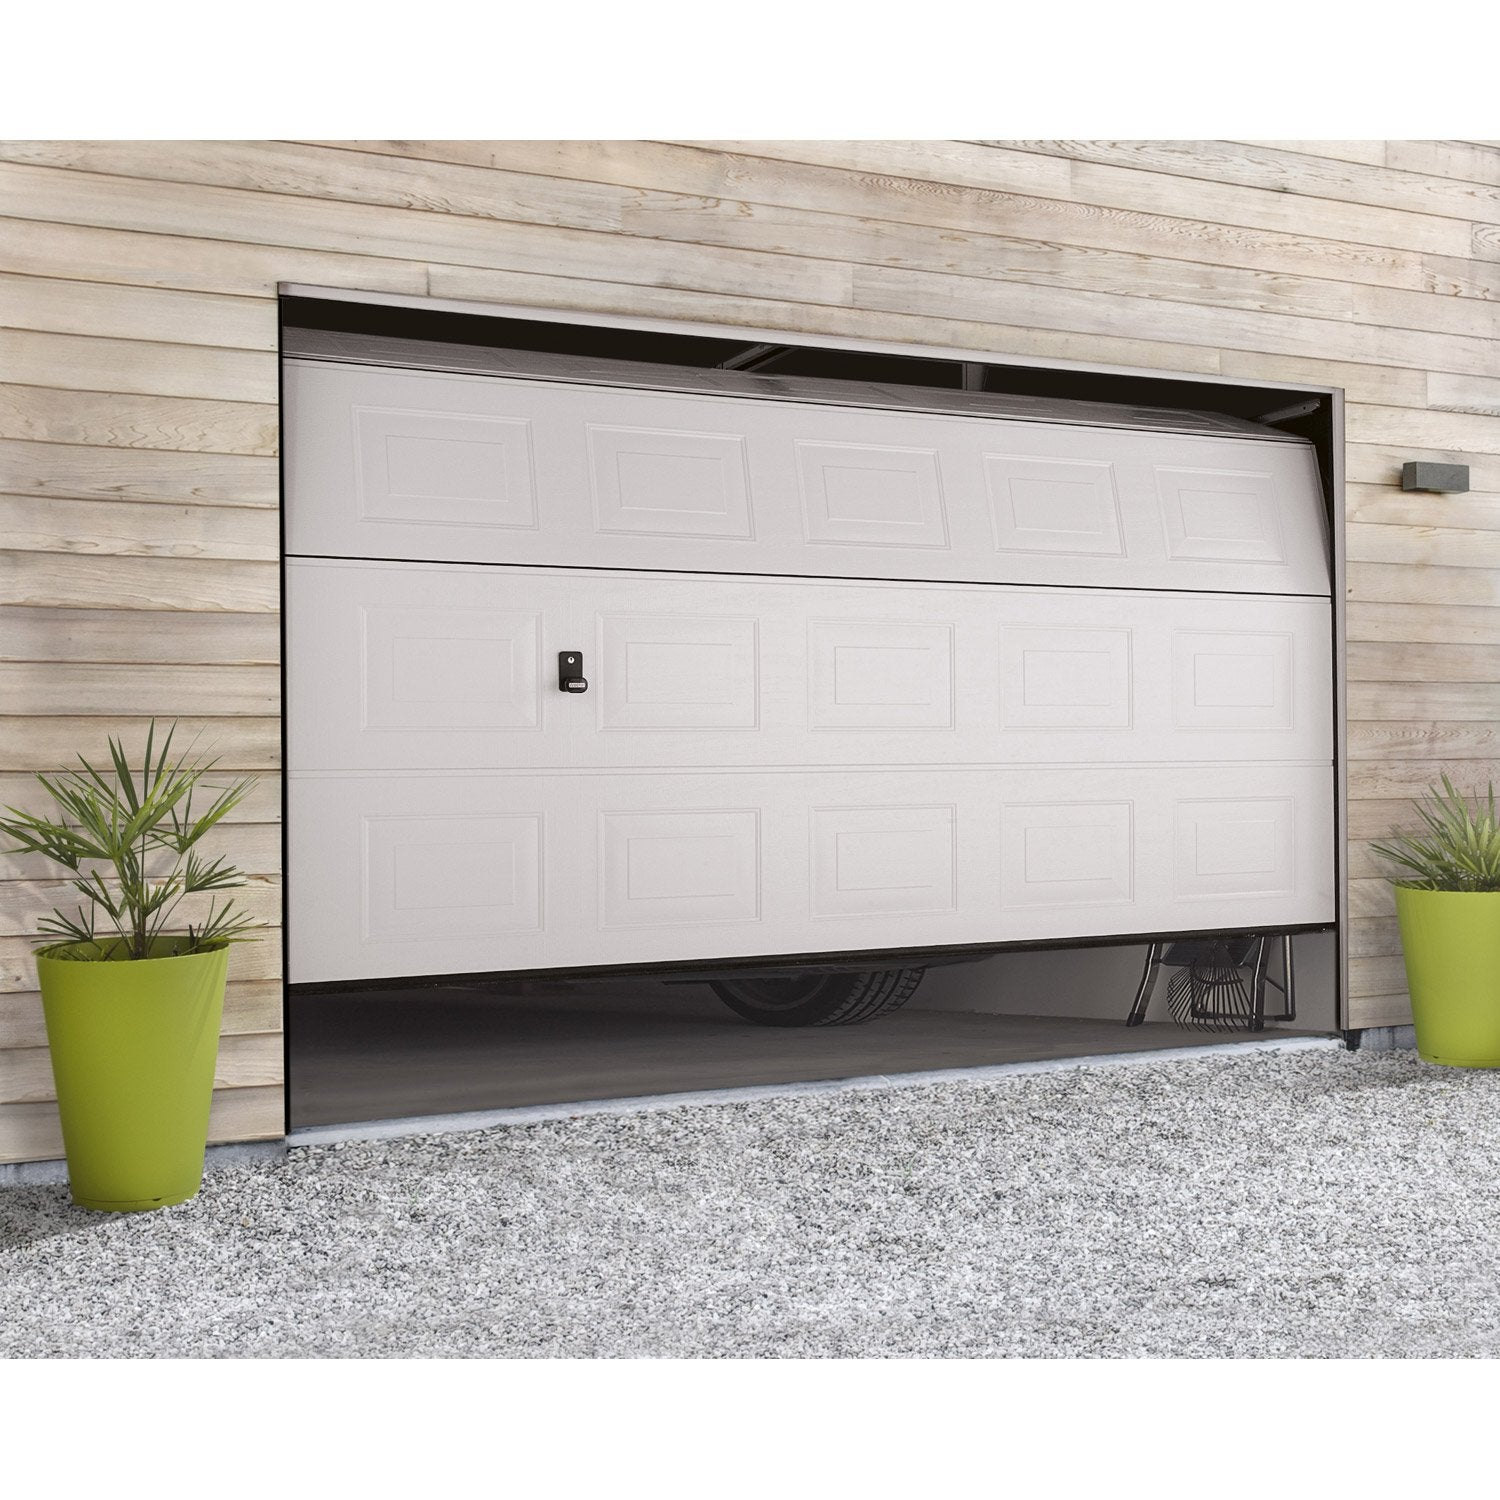 Porte de garage sectionnelle motoris e hormann x l for Porte de garage sectionnelle 250 x 200